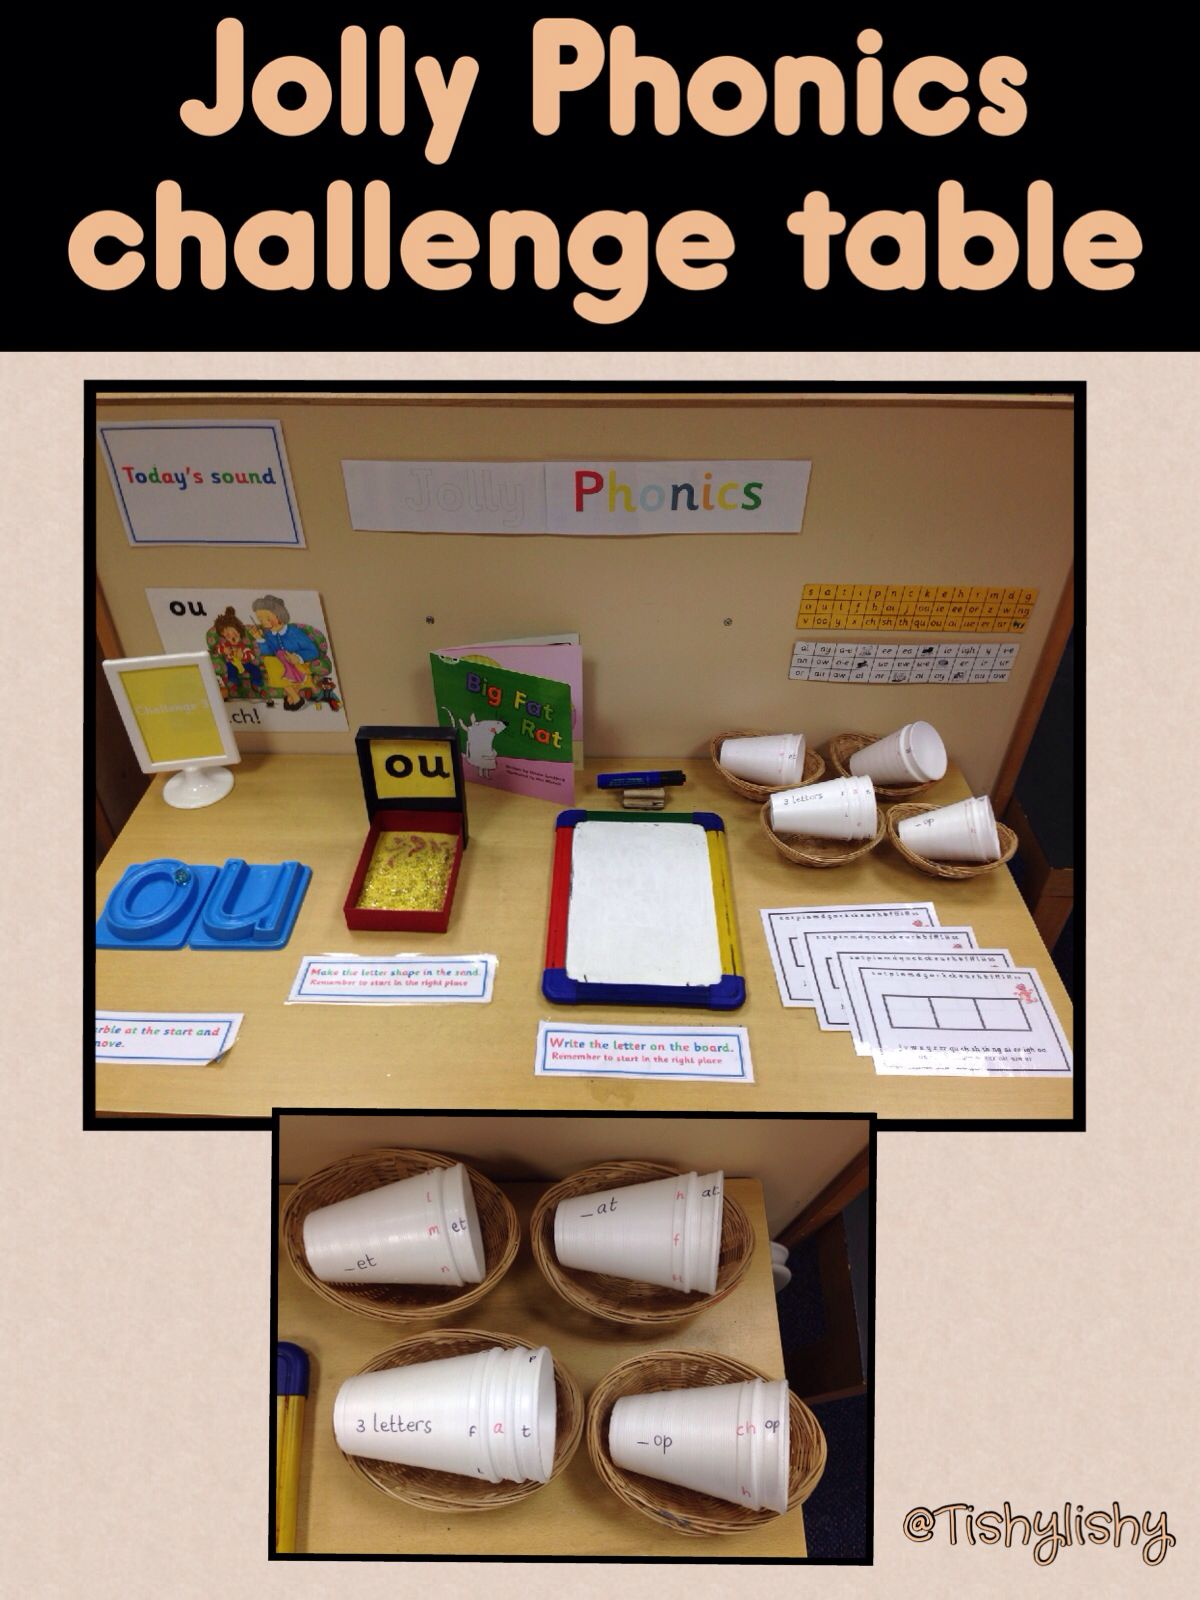 Jolly Phonics Challenge Table